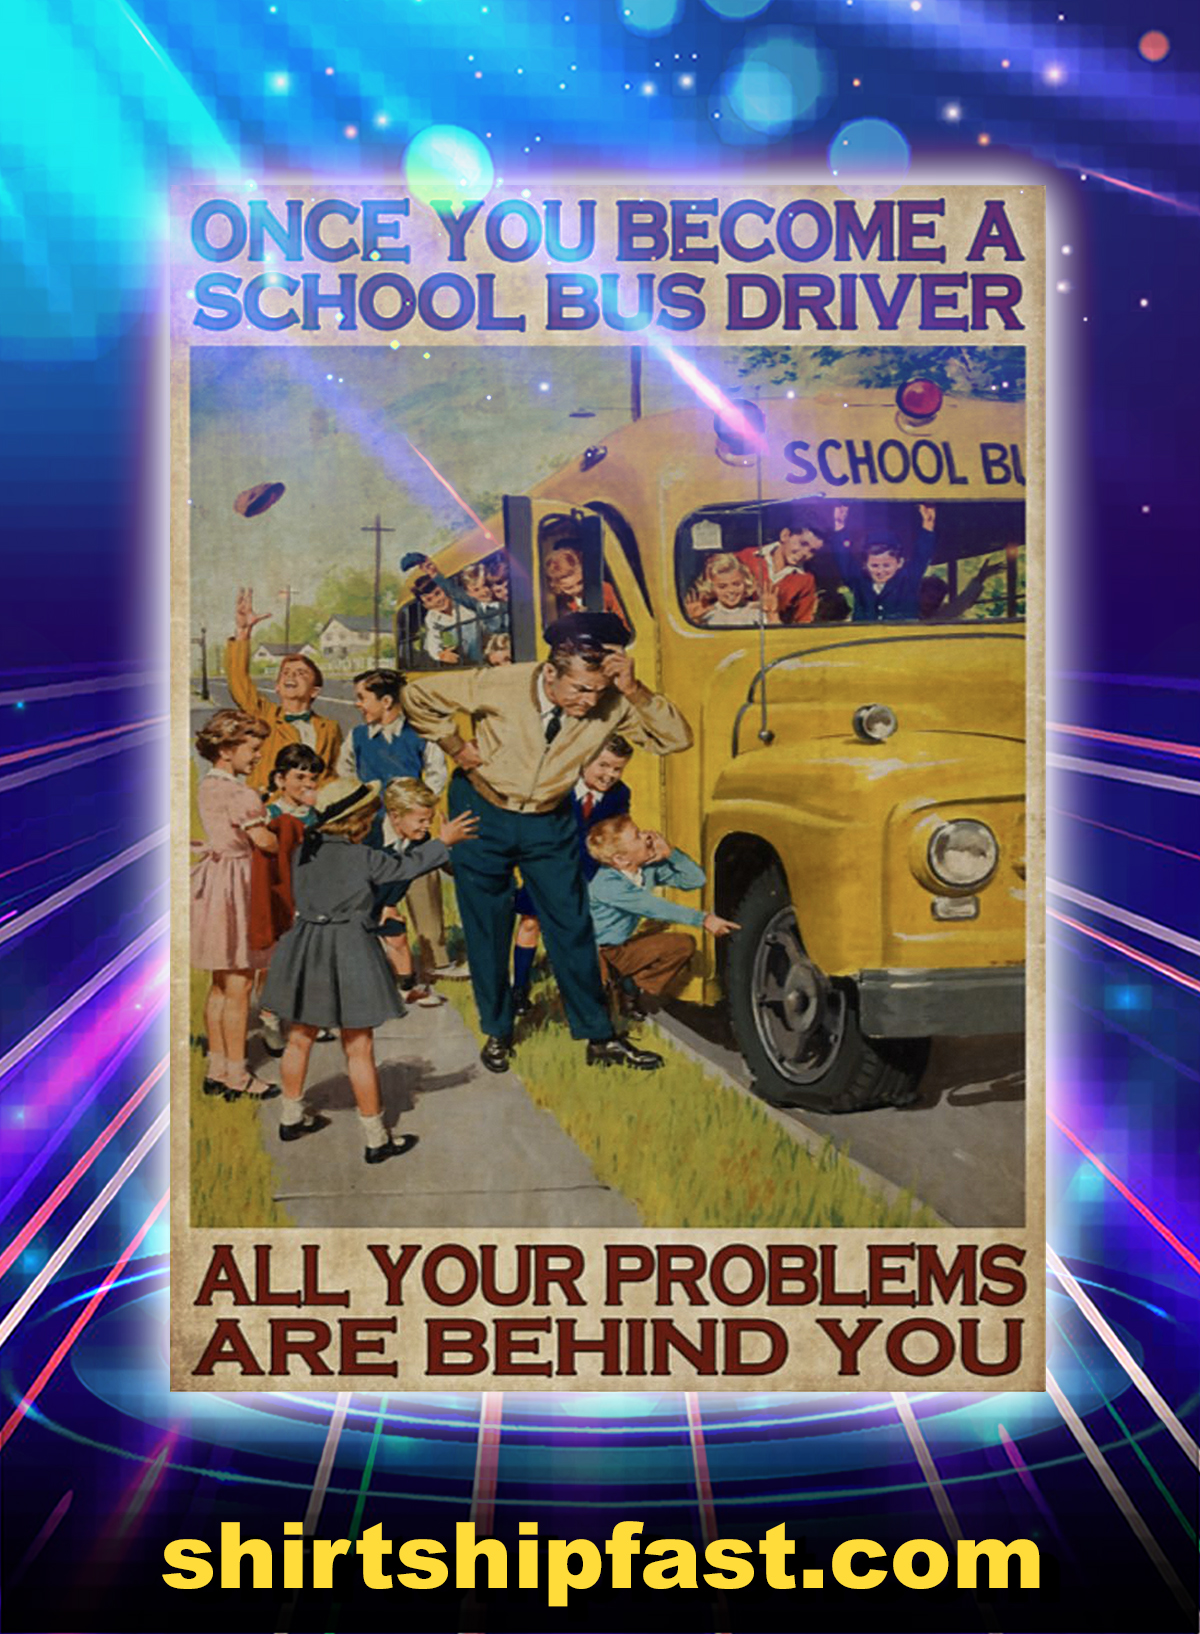 Once you become a school bus driver all your problems are behind you poster - A4